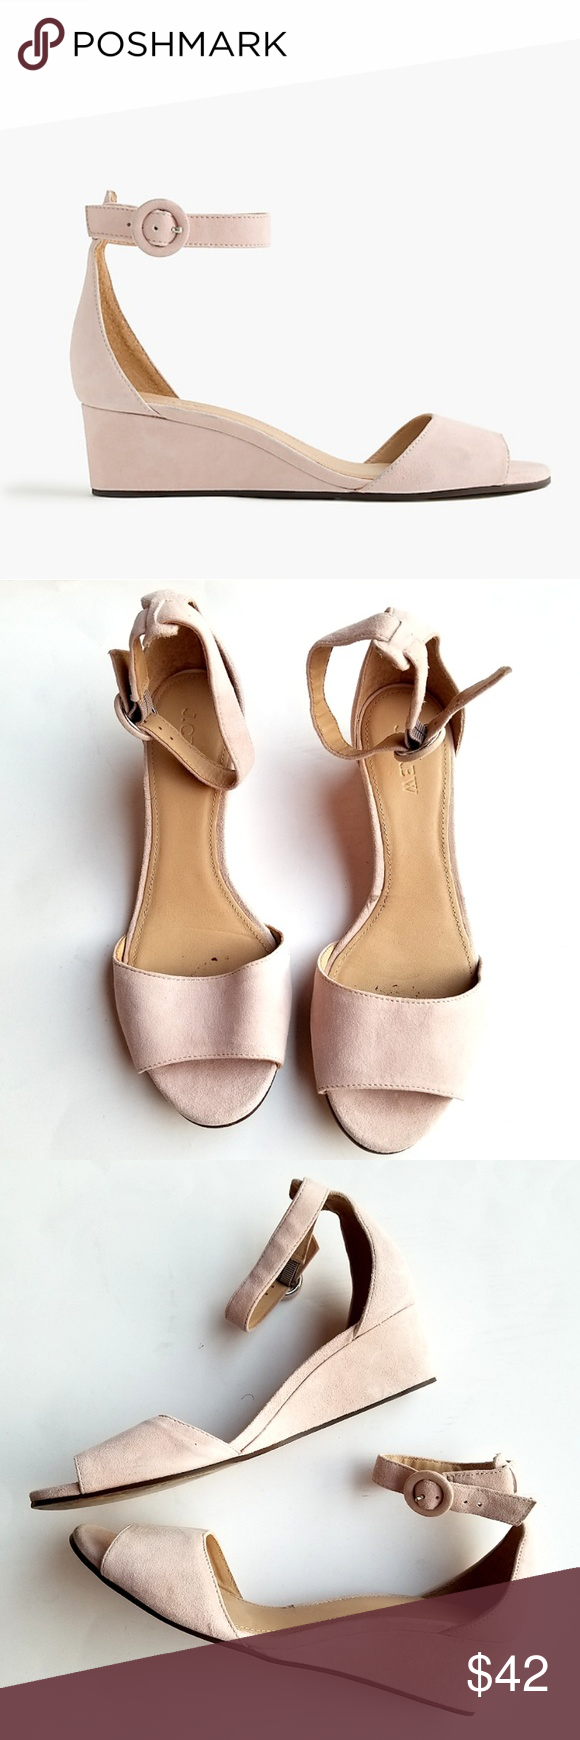 5a942ad84c63 J.Crew Laila Wedges in Suede Slightly stacked and so easy to walk in